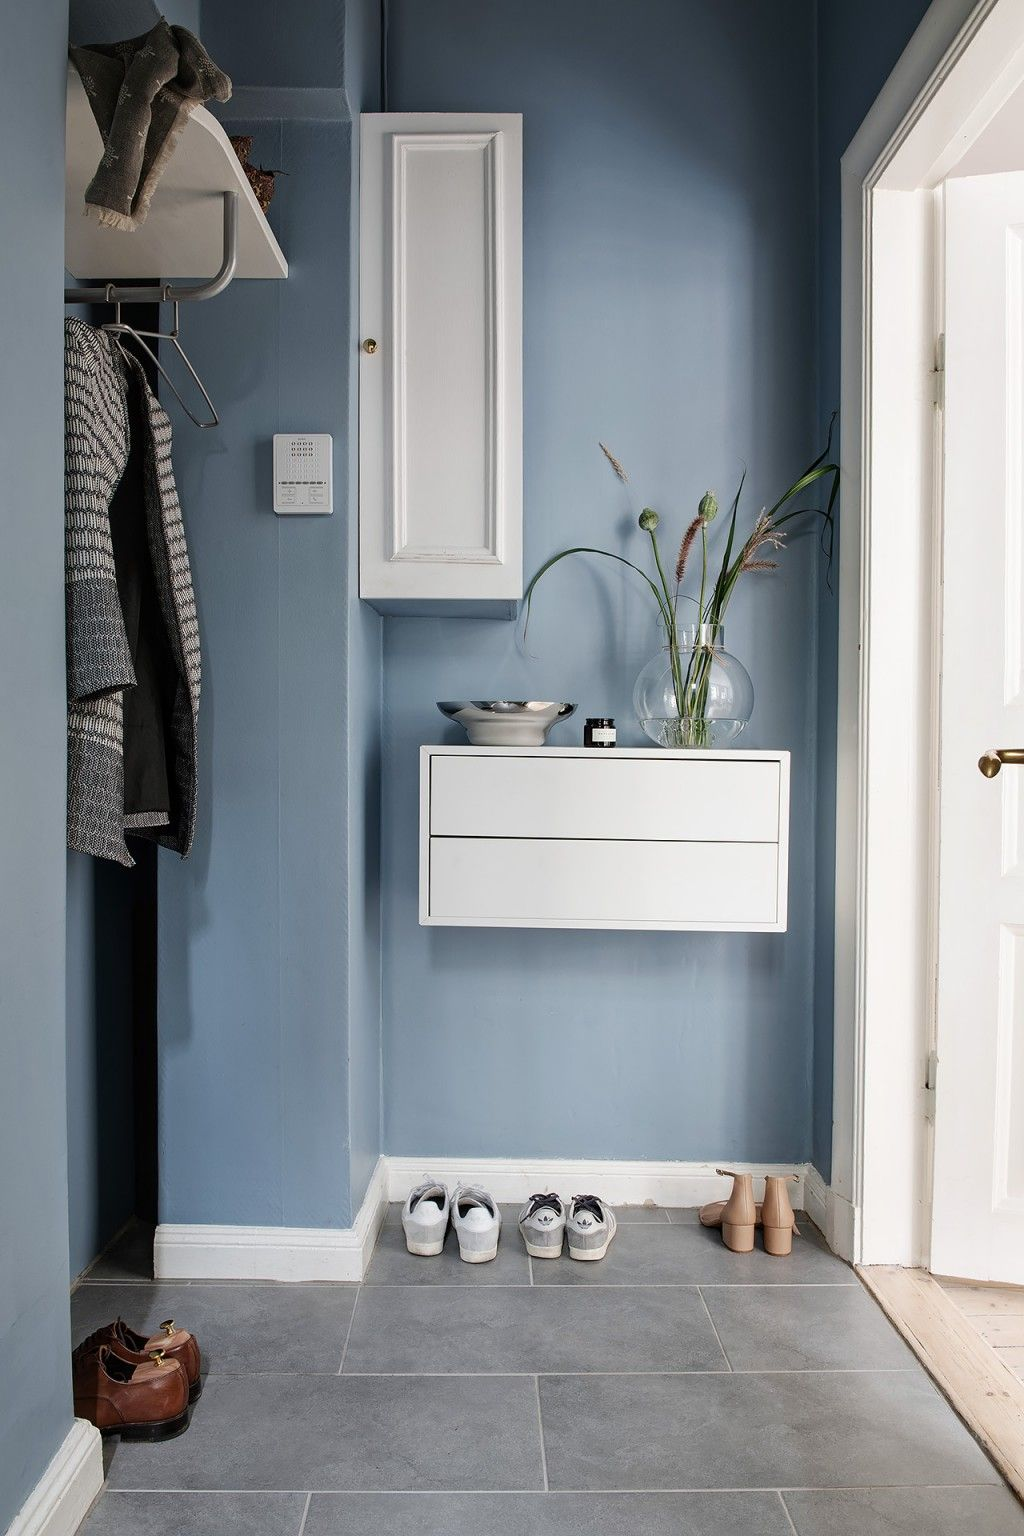 Design Your Room Online Ikea: Pin By Lori Whitman On Colors